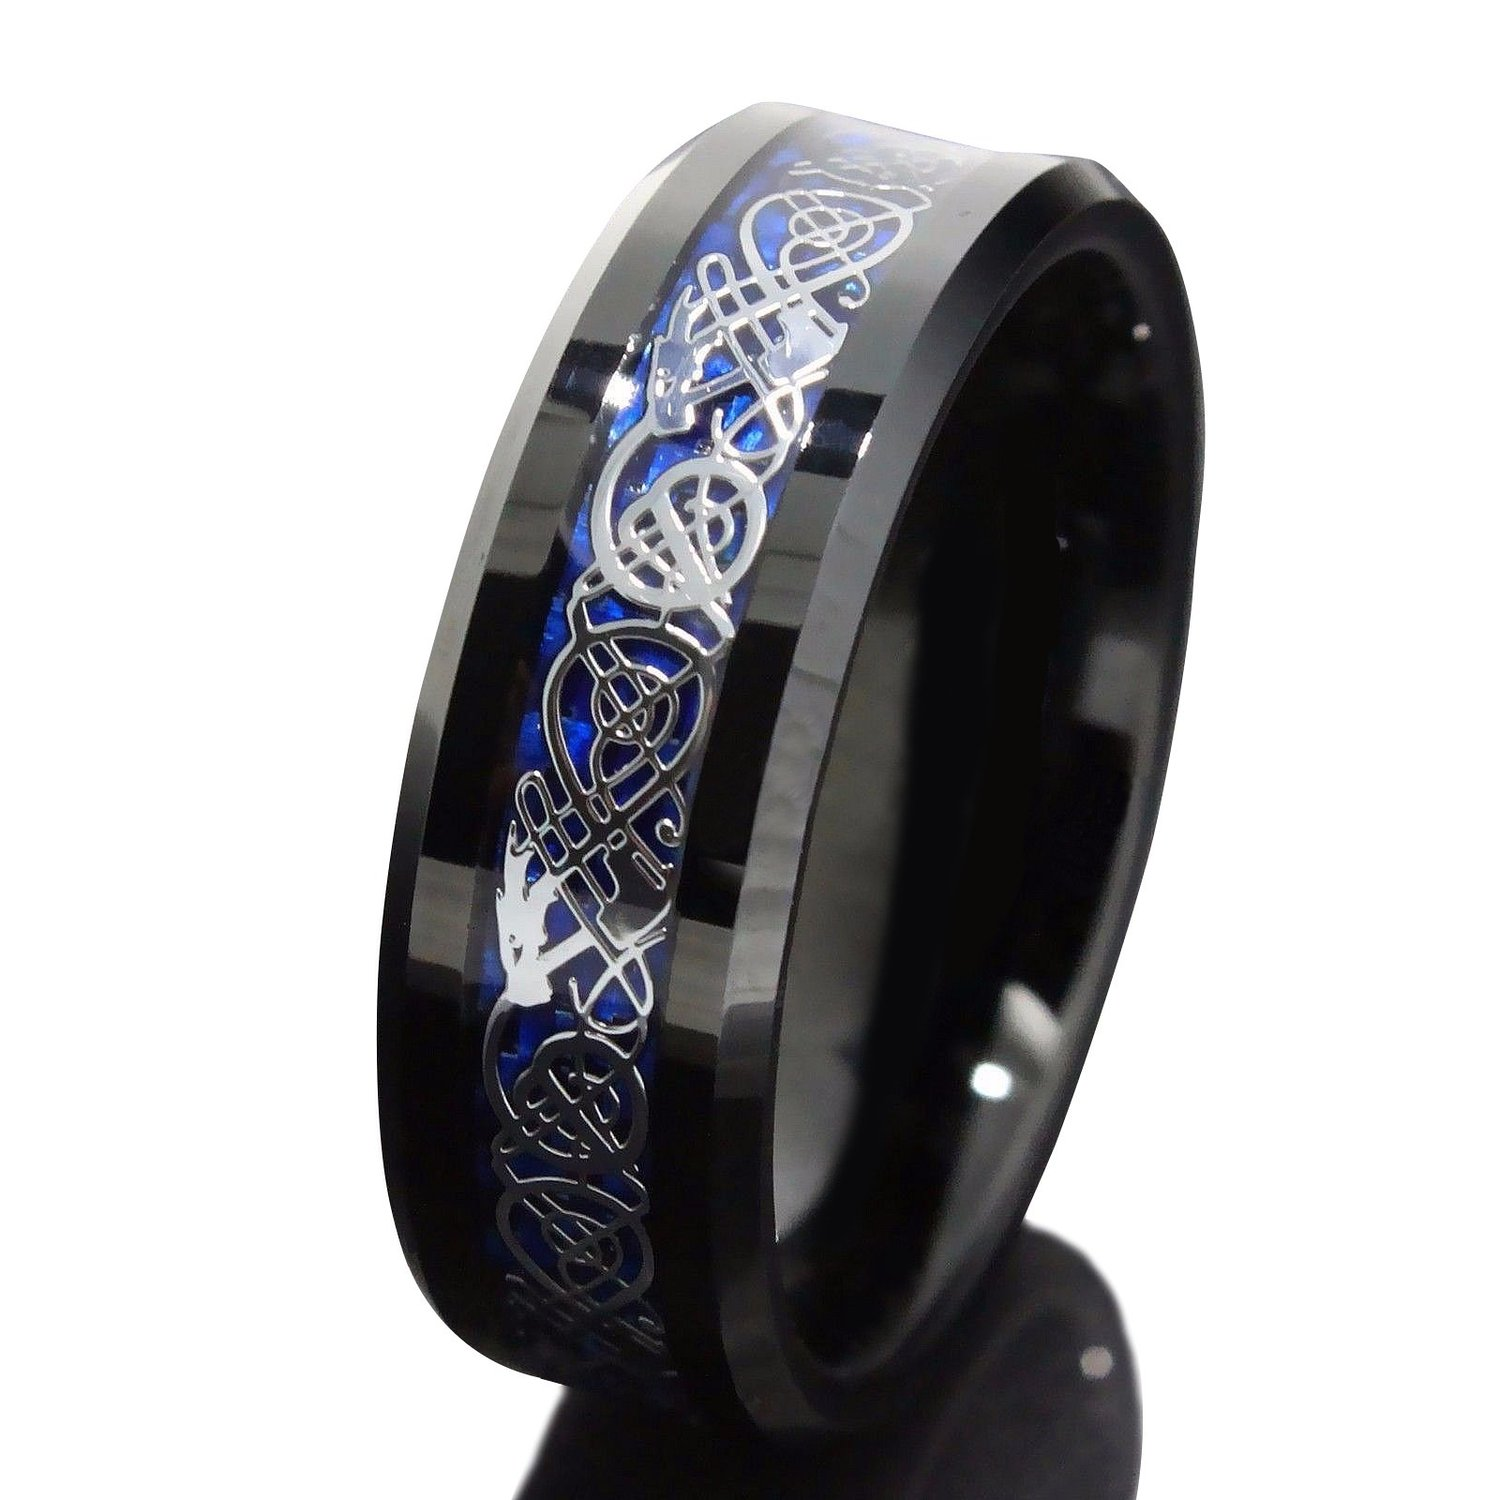 8mm Black Tungsten Carbide Ring Silvering Celtic Dragon Blue Carbon Fibre Wedding Band Mens Size 6-13 | Amazon.com